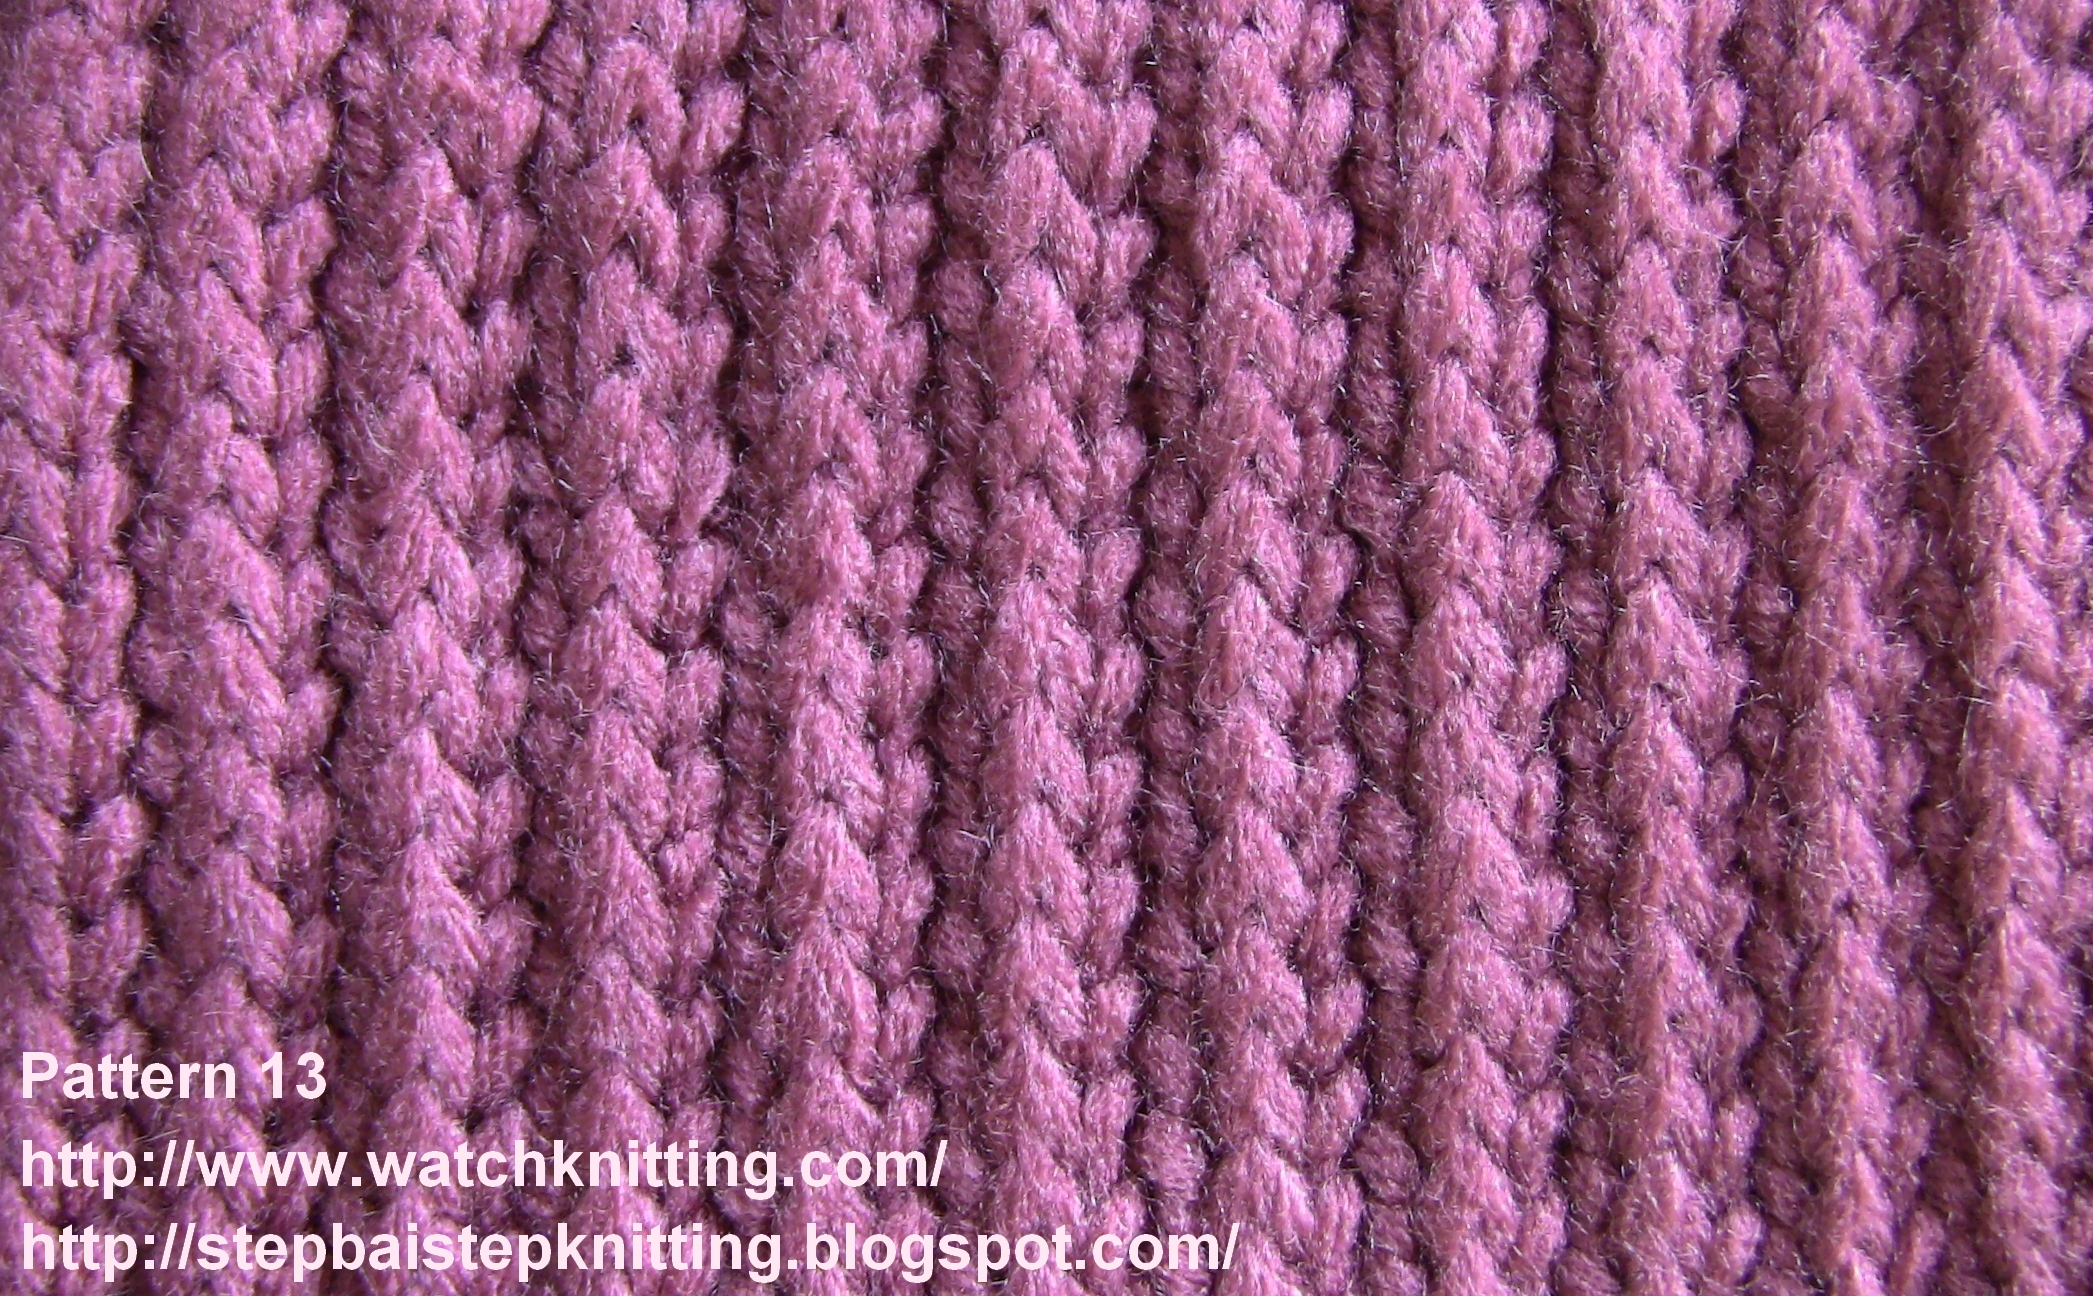 Basic Knitting Stitches Watch knitting